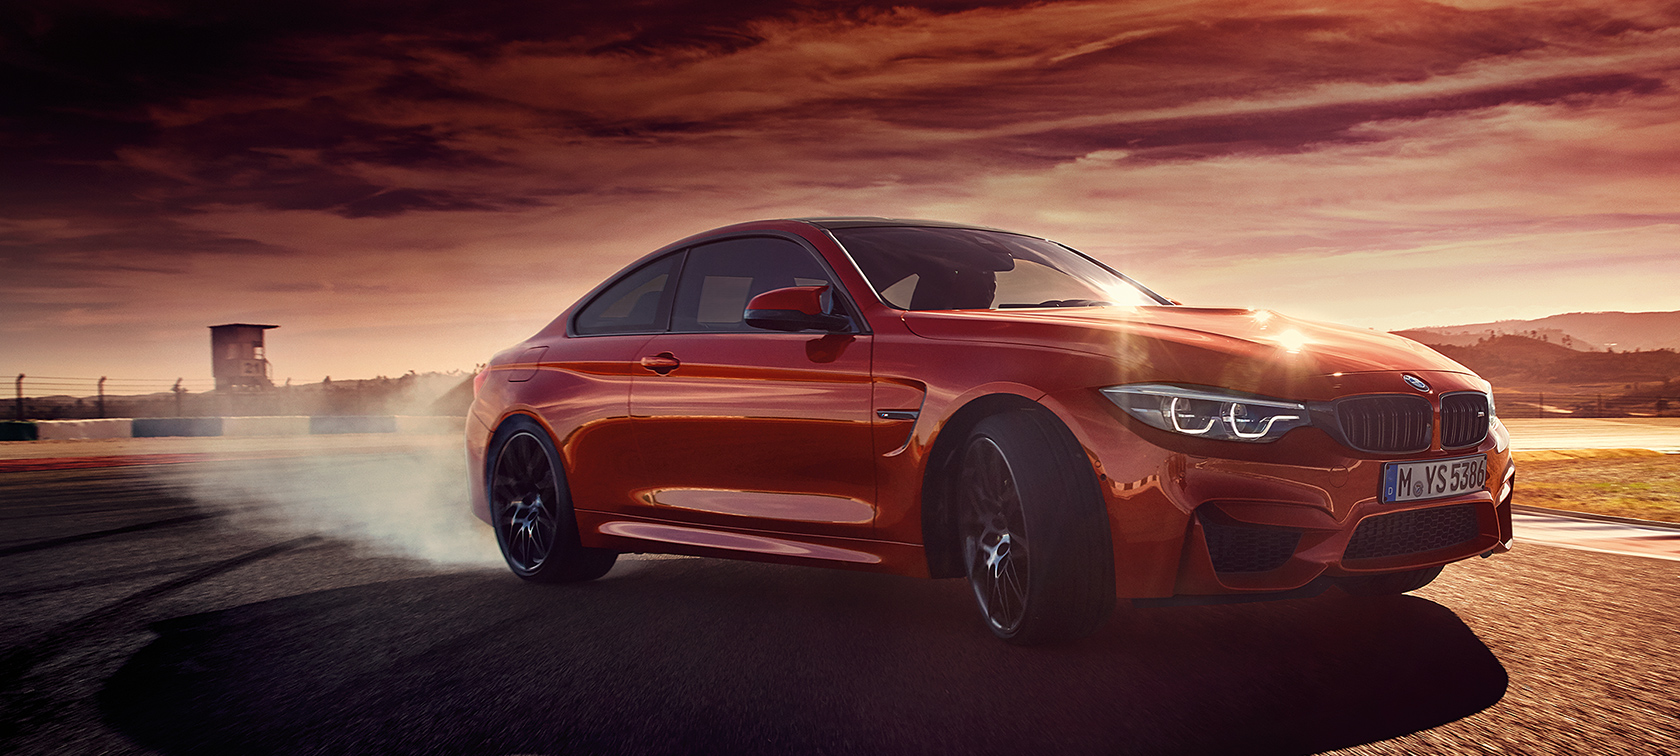 BMW M-Series M4 Coupe red in a dusty road